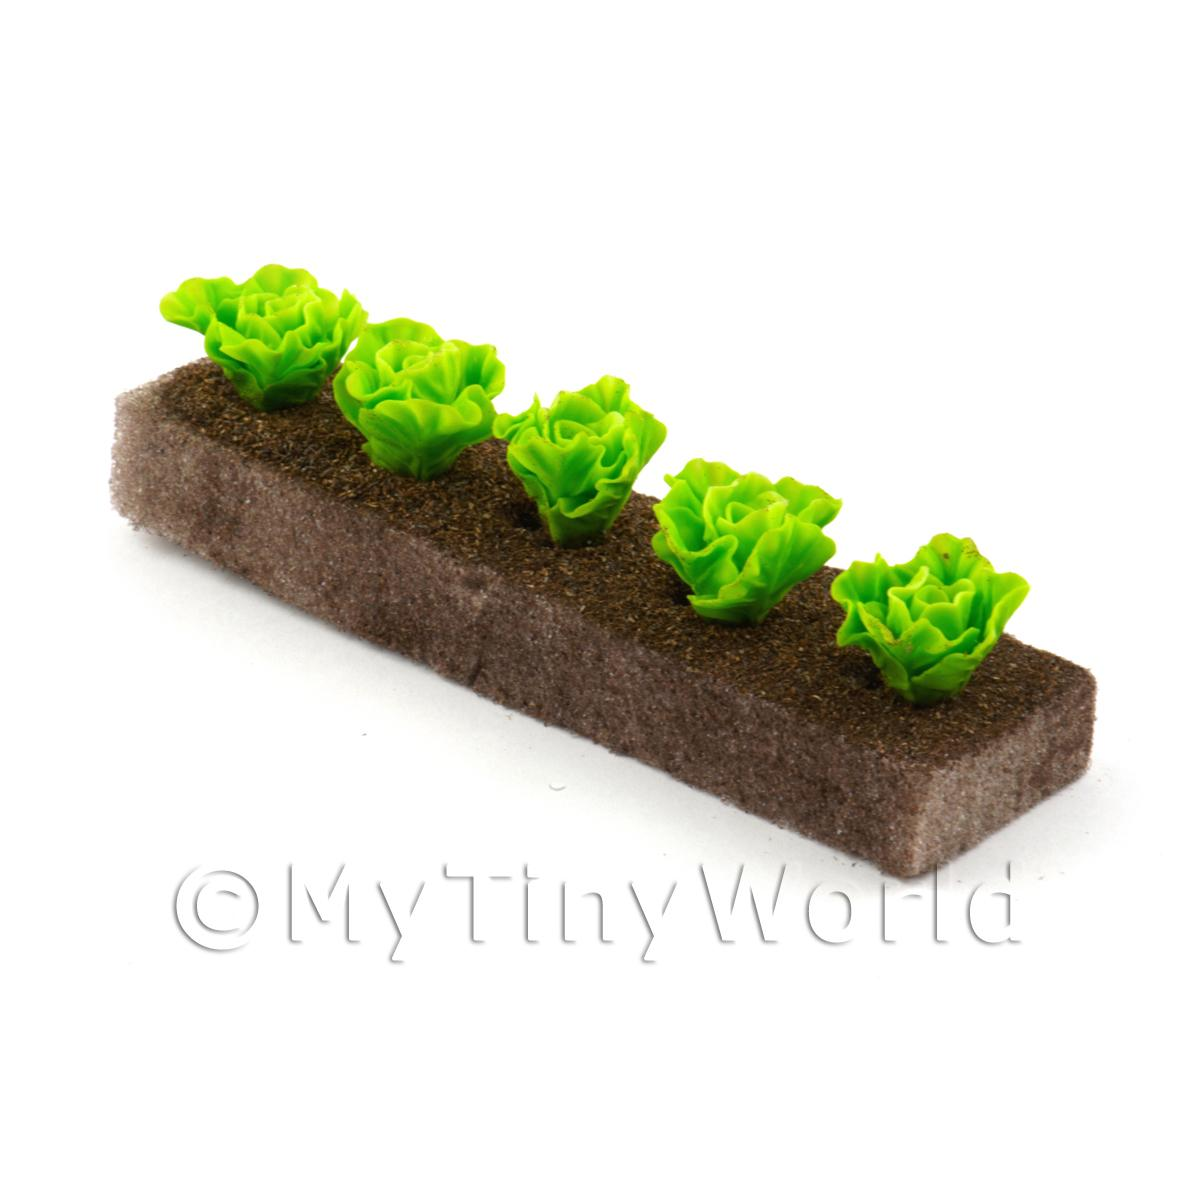 Strip of 5 Miniature Lettuces For The Allotment